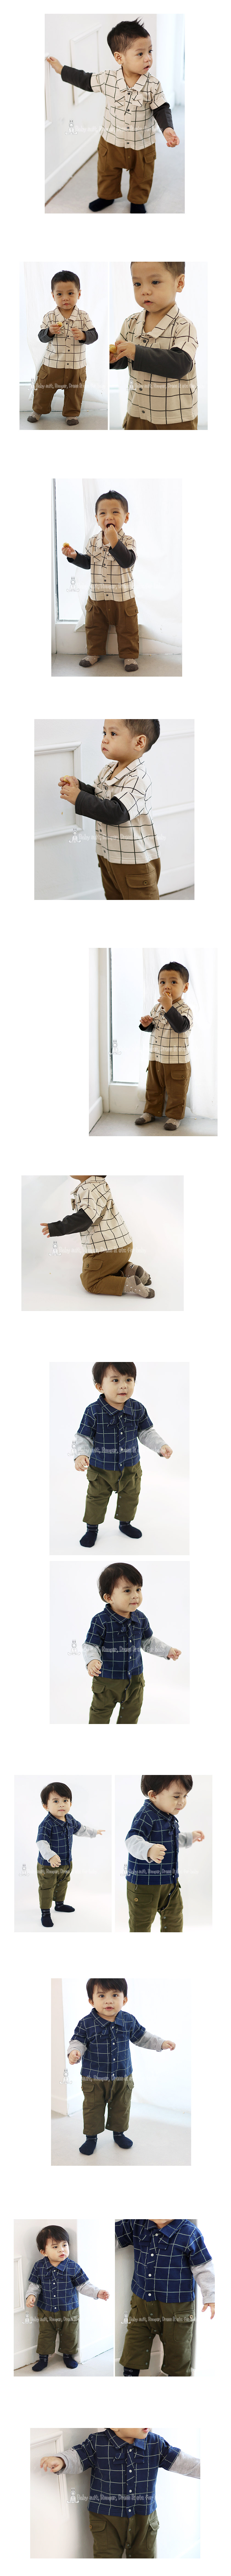 [ BABYMAX ] Baby Ribbon Check Shirt Rompers 1300